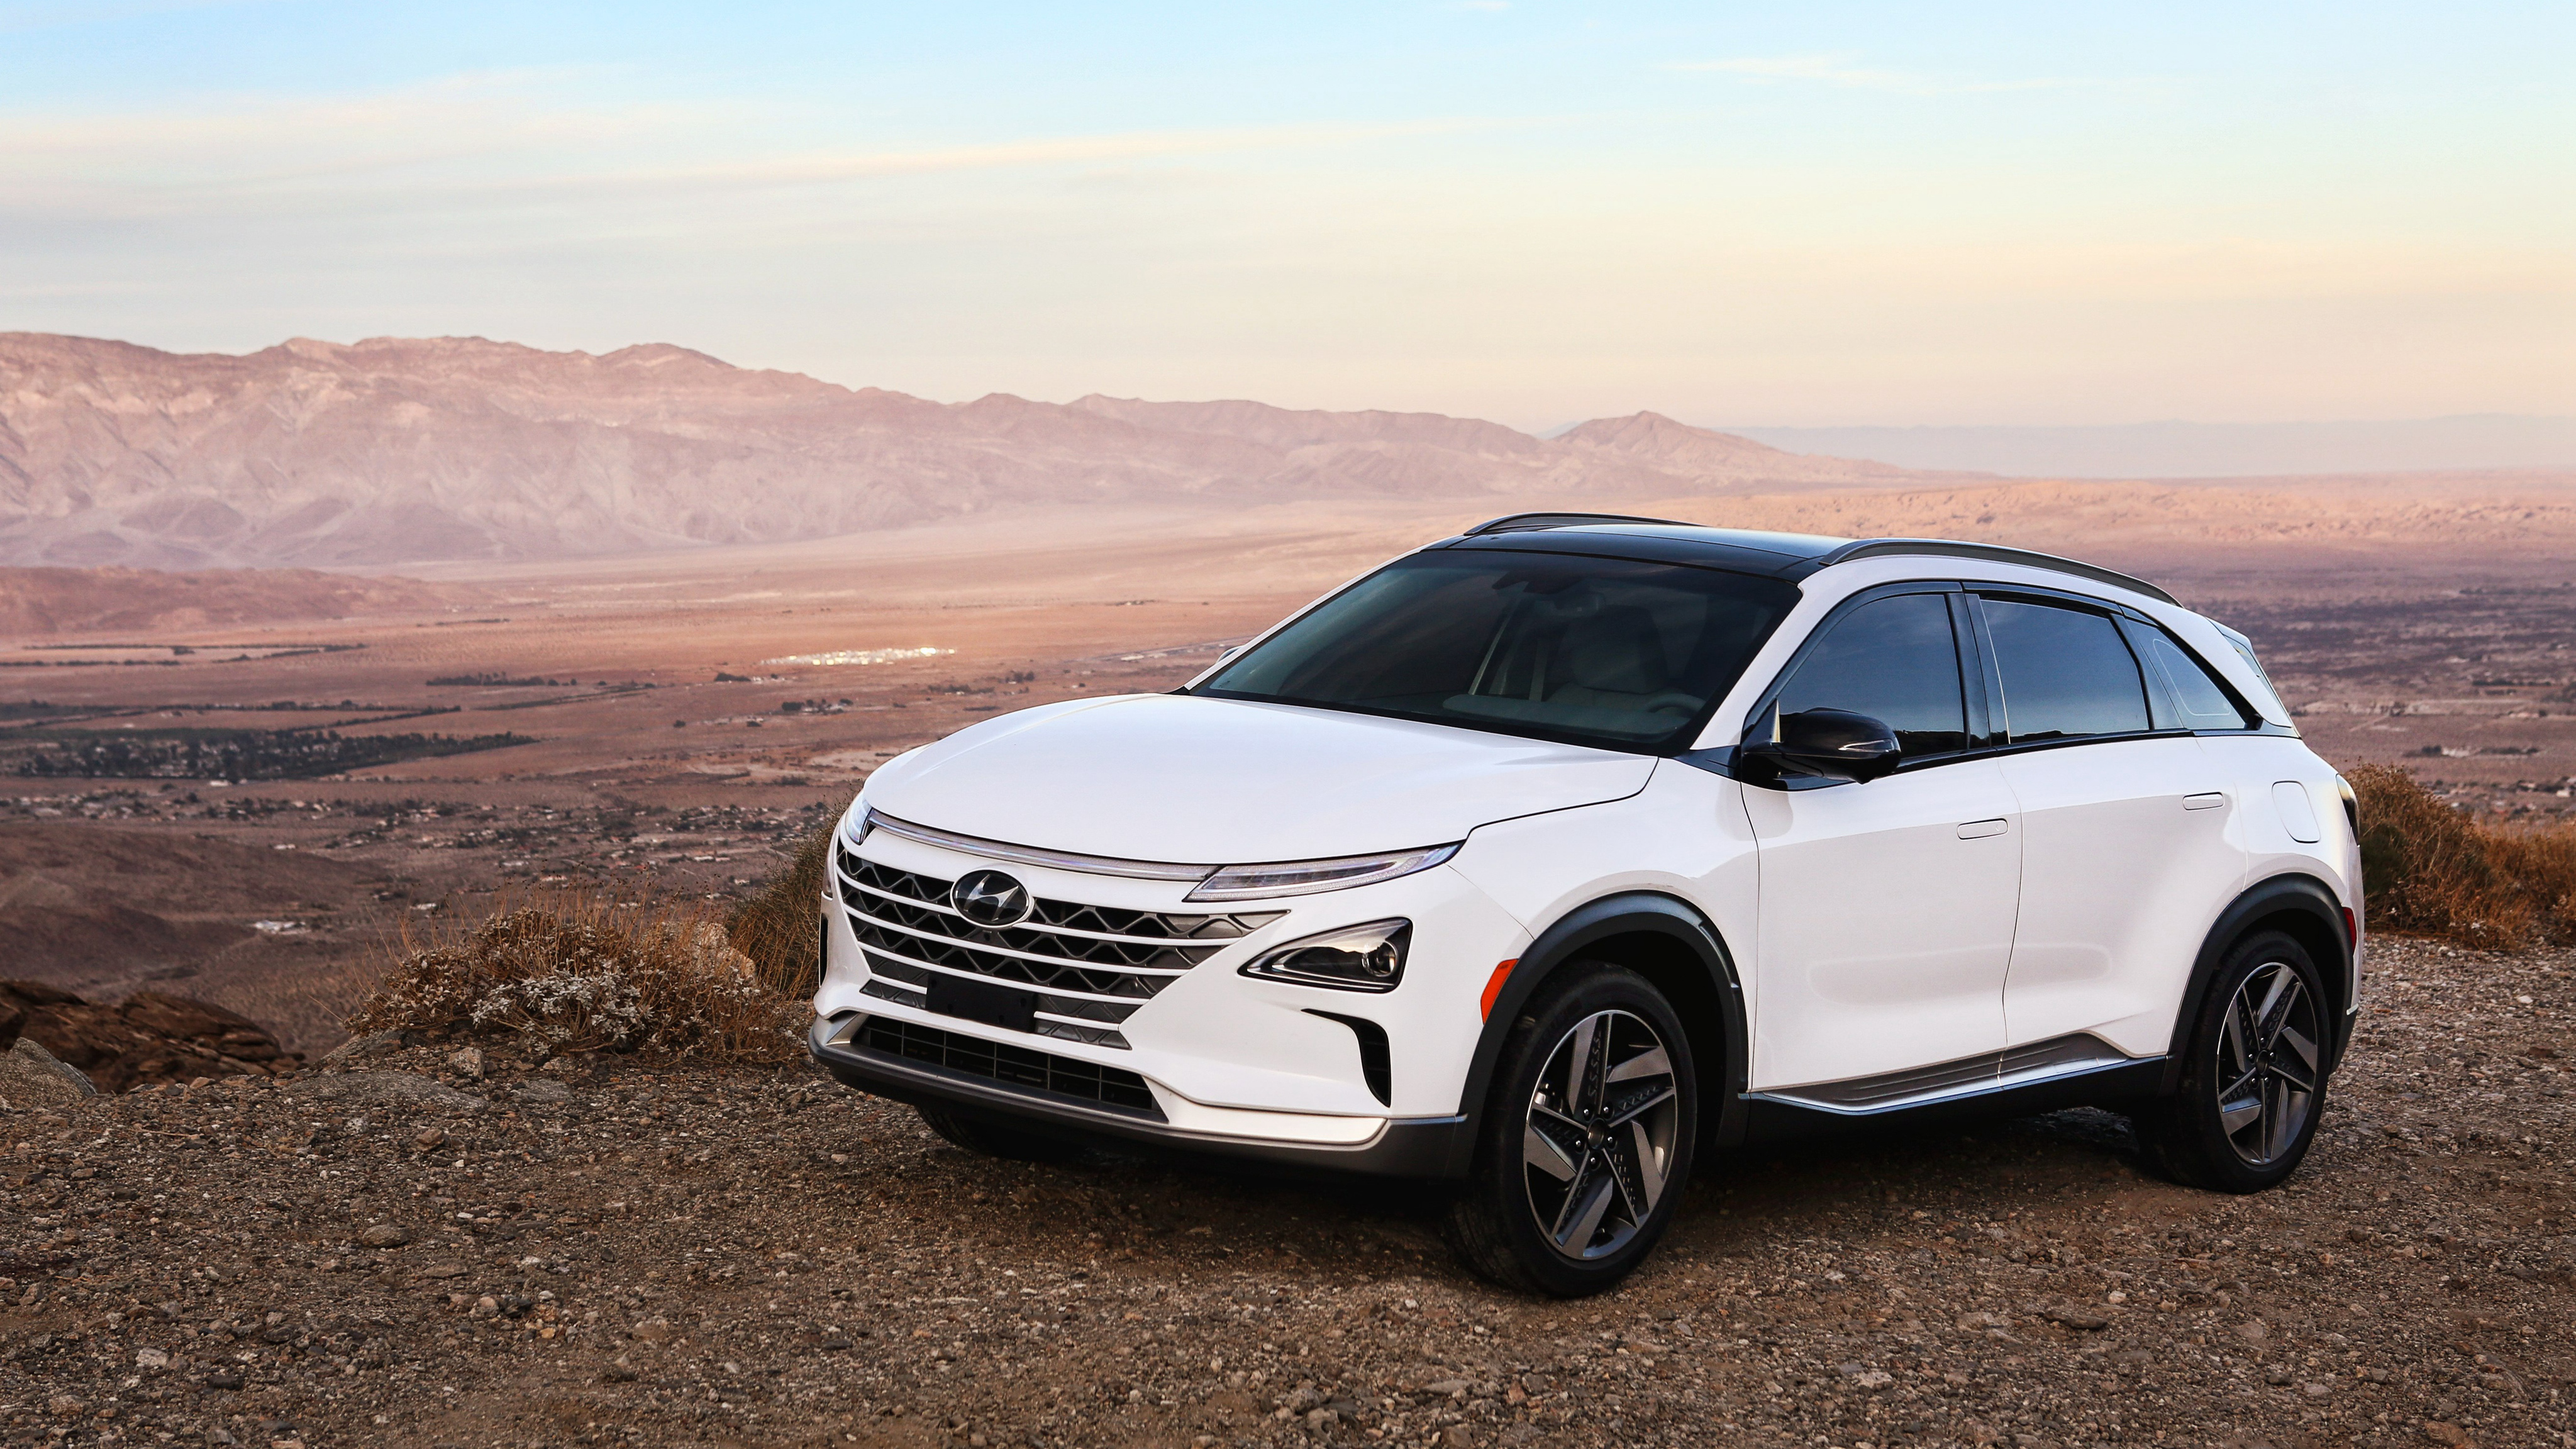 Hyundai Nexo CES 2018 4K 2 Wallpaper HD Car Wallpapers ID 9389 4096x2304